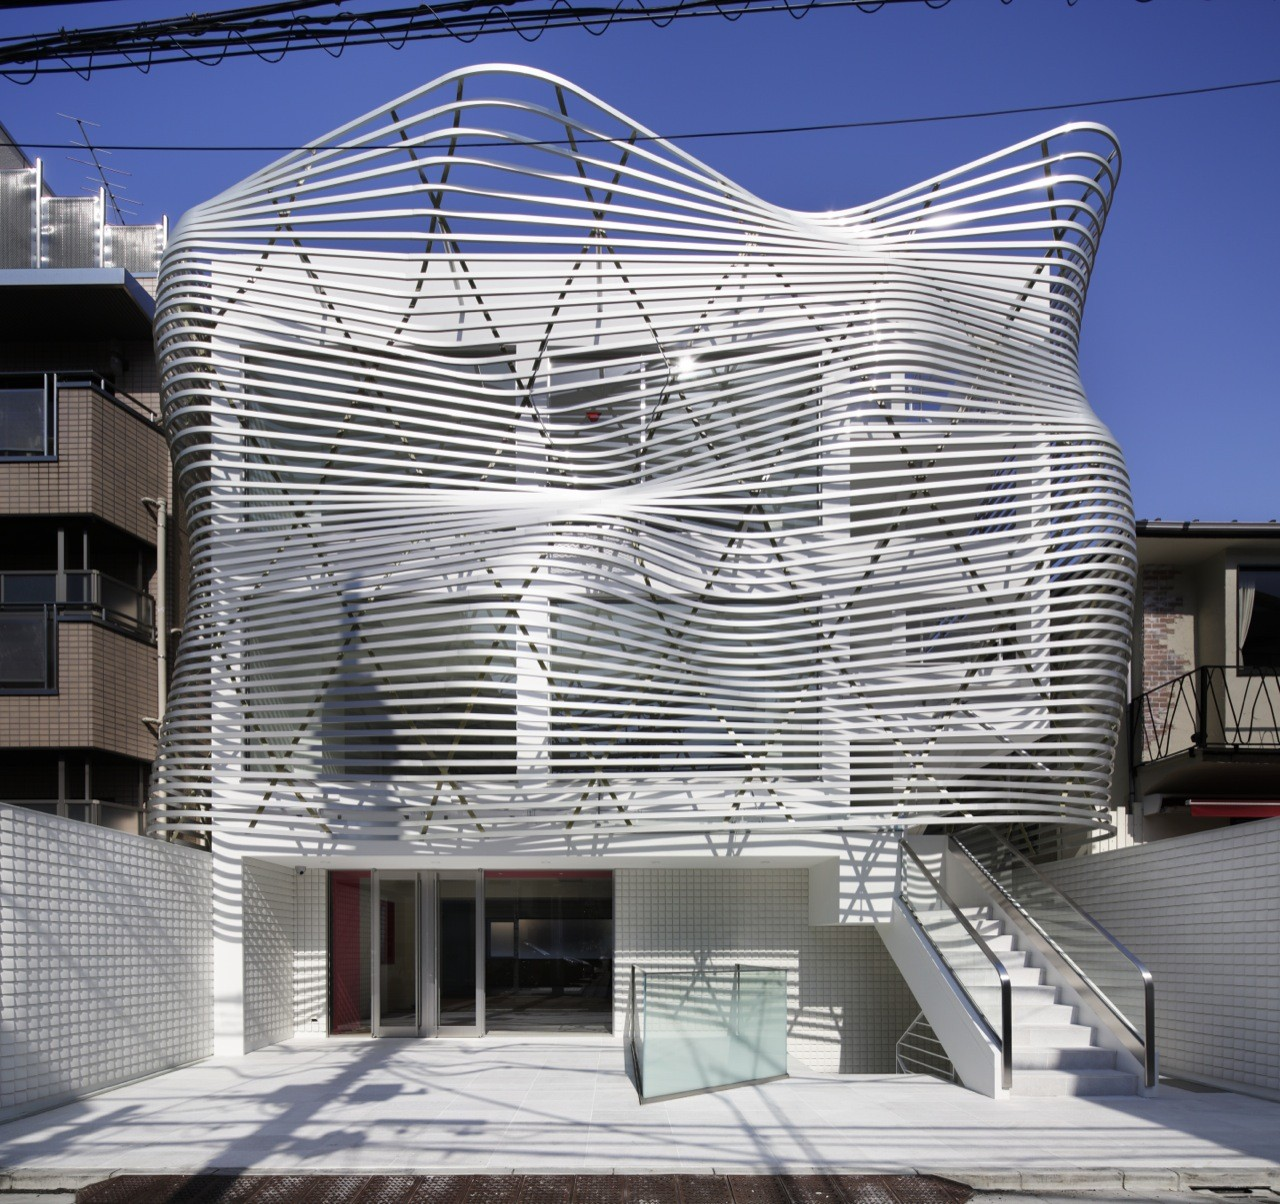 Edifício Dear Jingumae / amano design office, © Nacasa & Partners Inc.